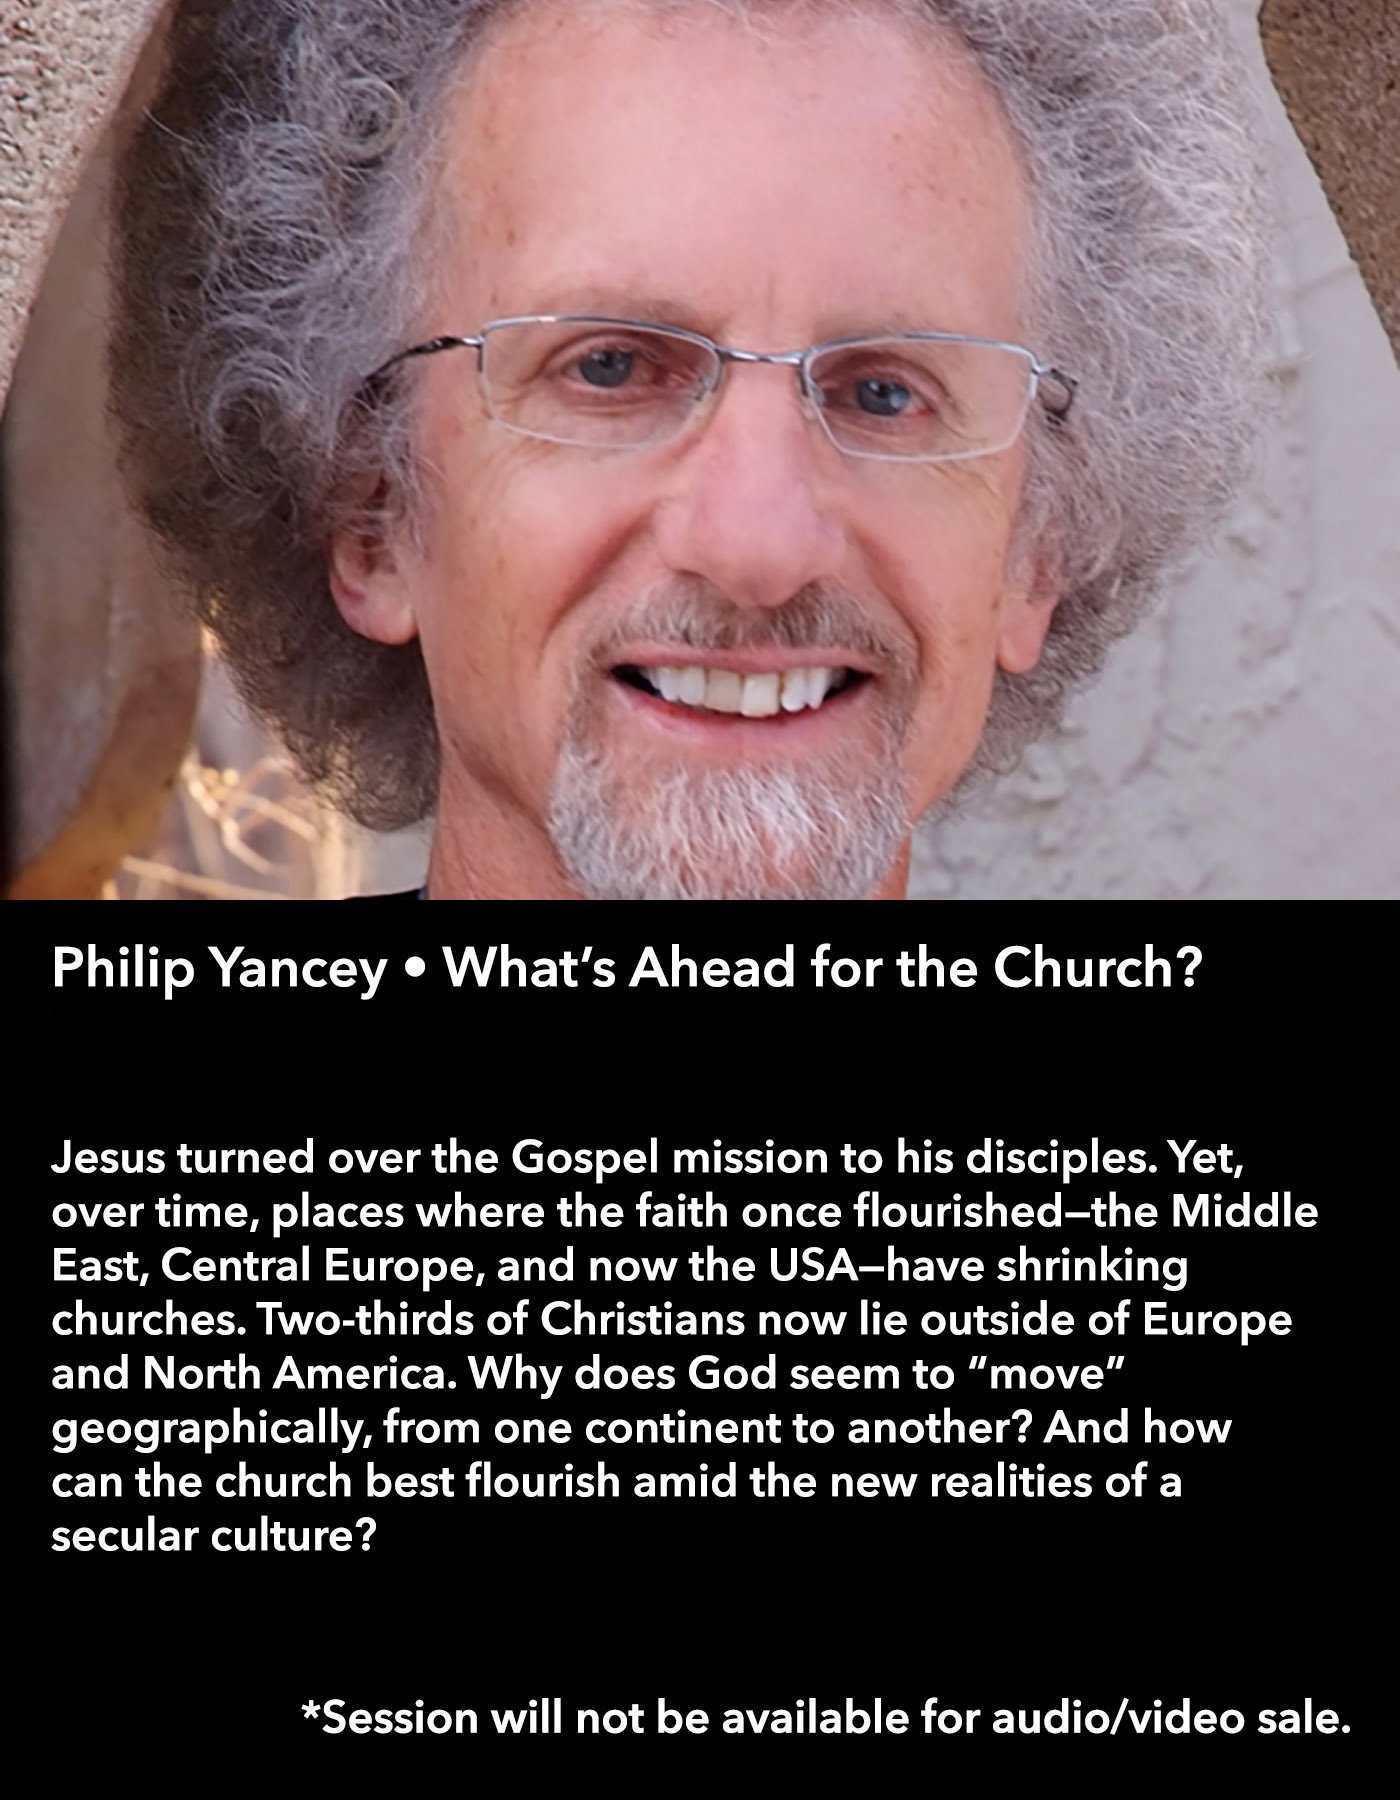 Philip Yancey • What's Ahead for the Church? • Friday Morning, March 17 • 10:30 – 11:45 am